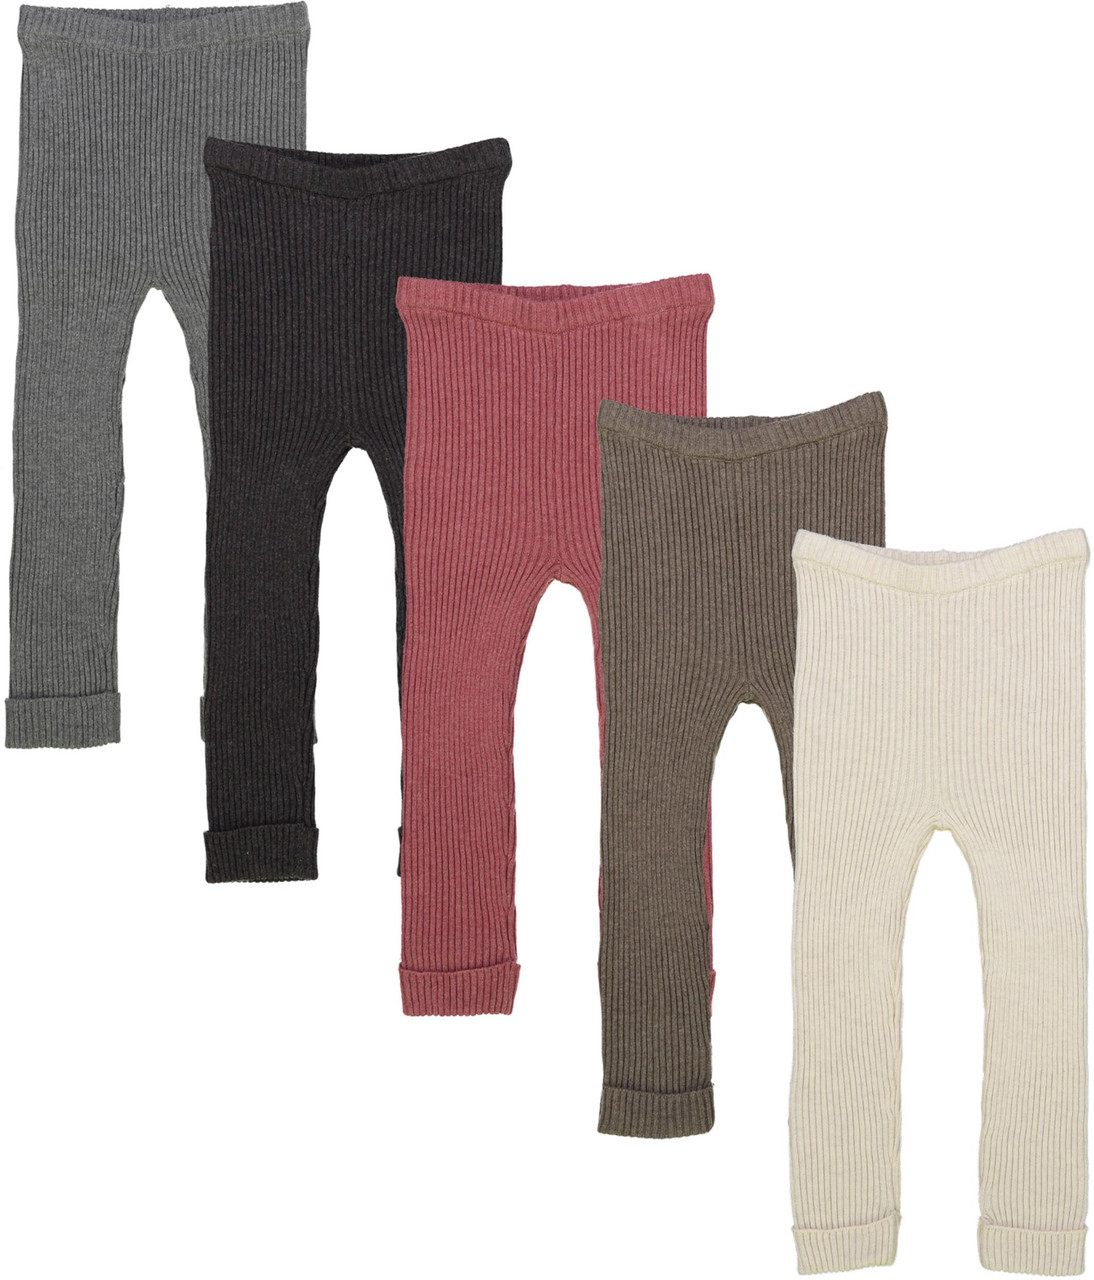 Analogie by Lil Legs Boys Girls Unisex Winter Ribbed Knit Leggings